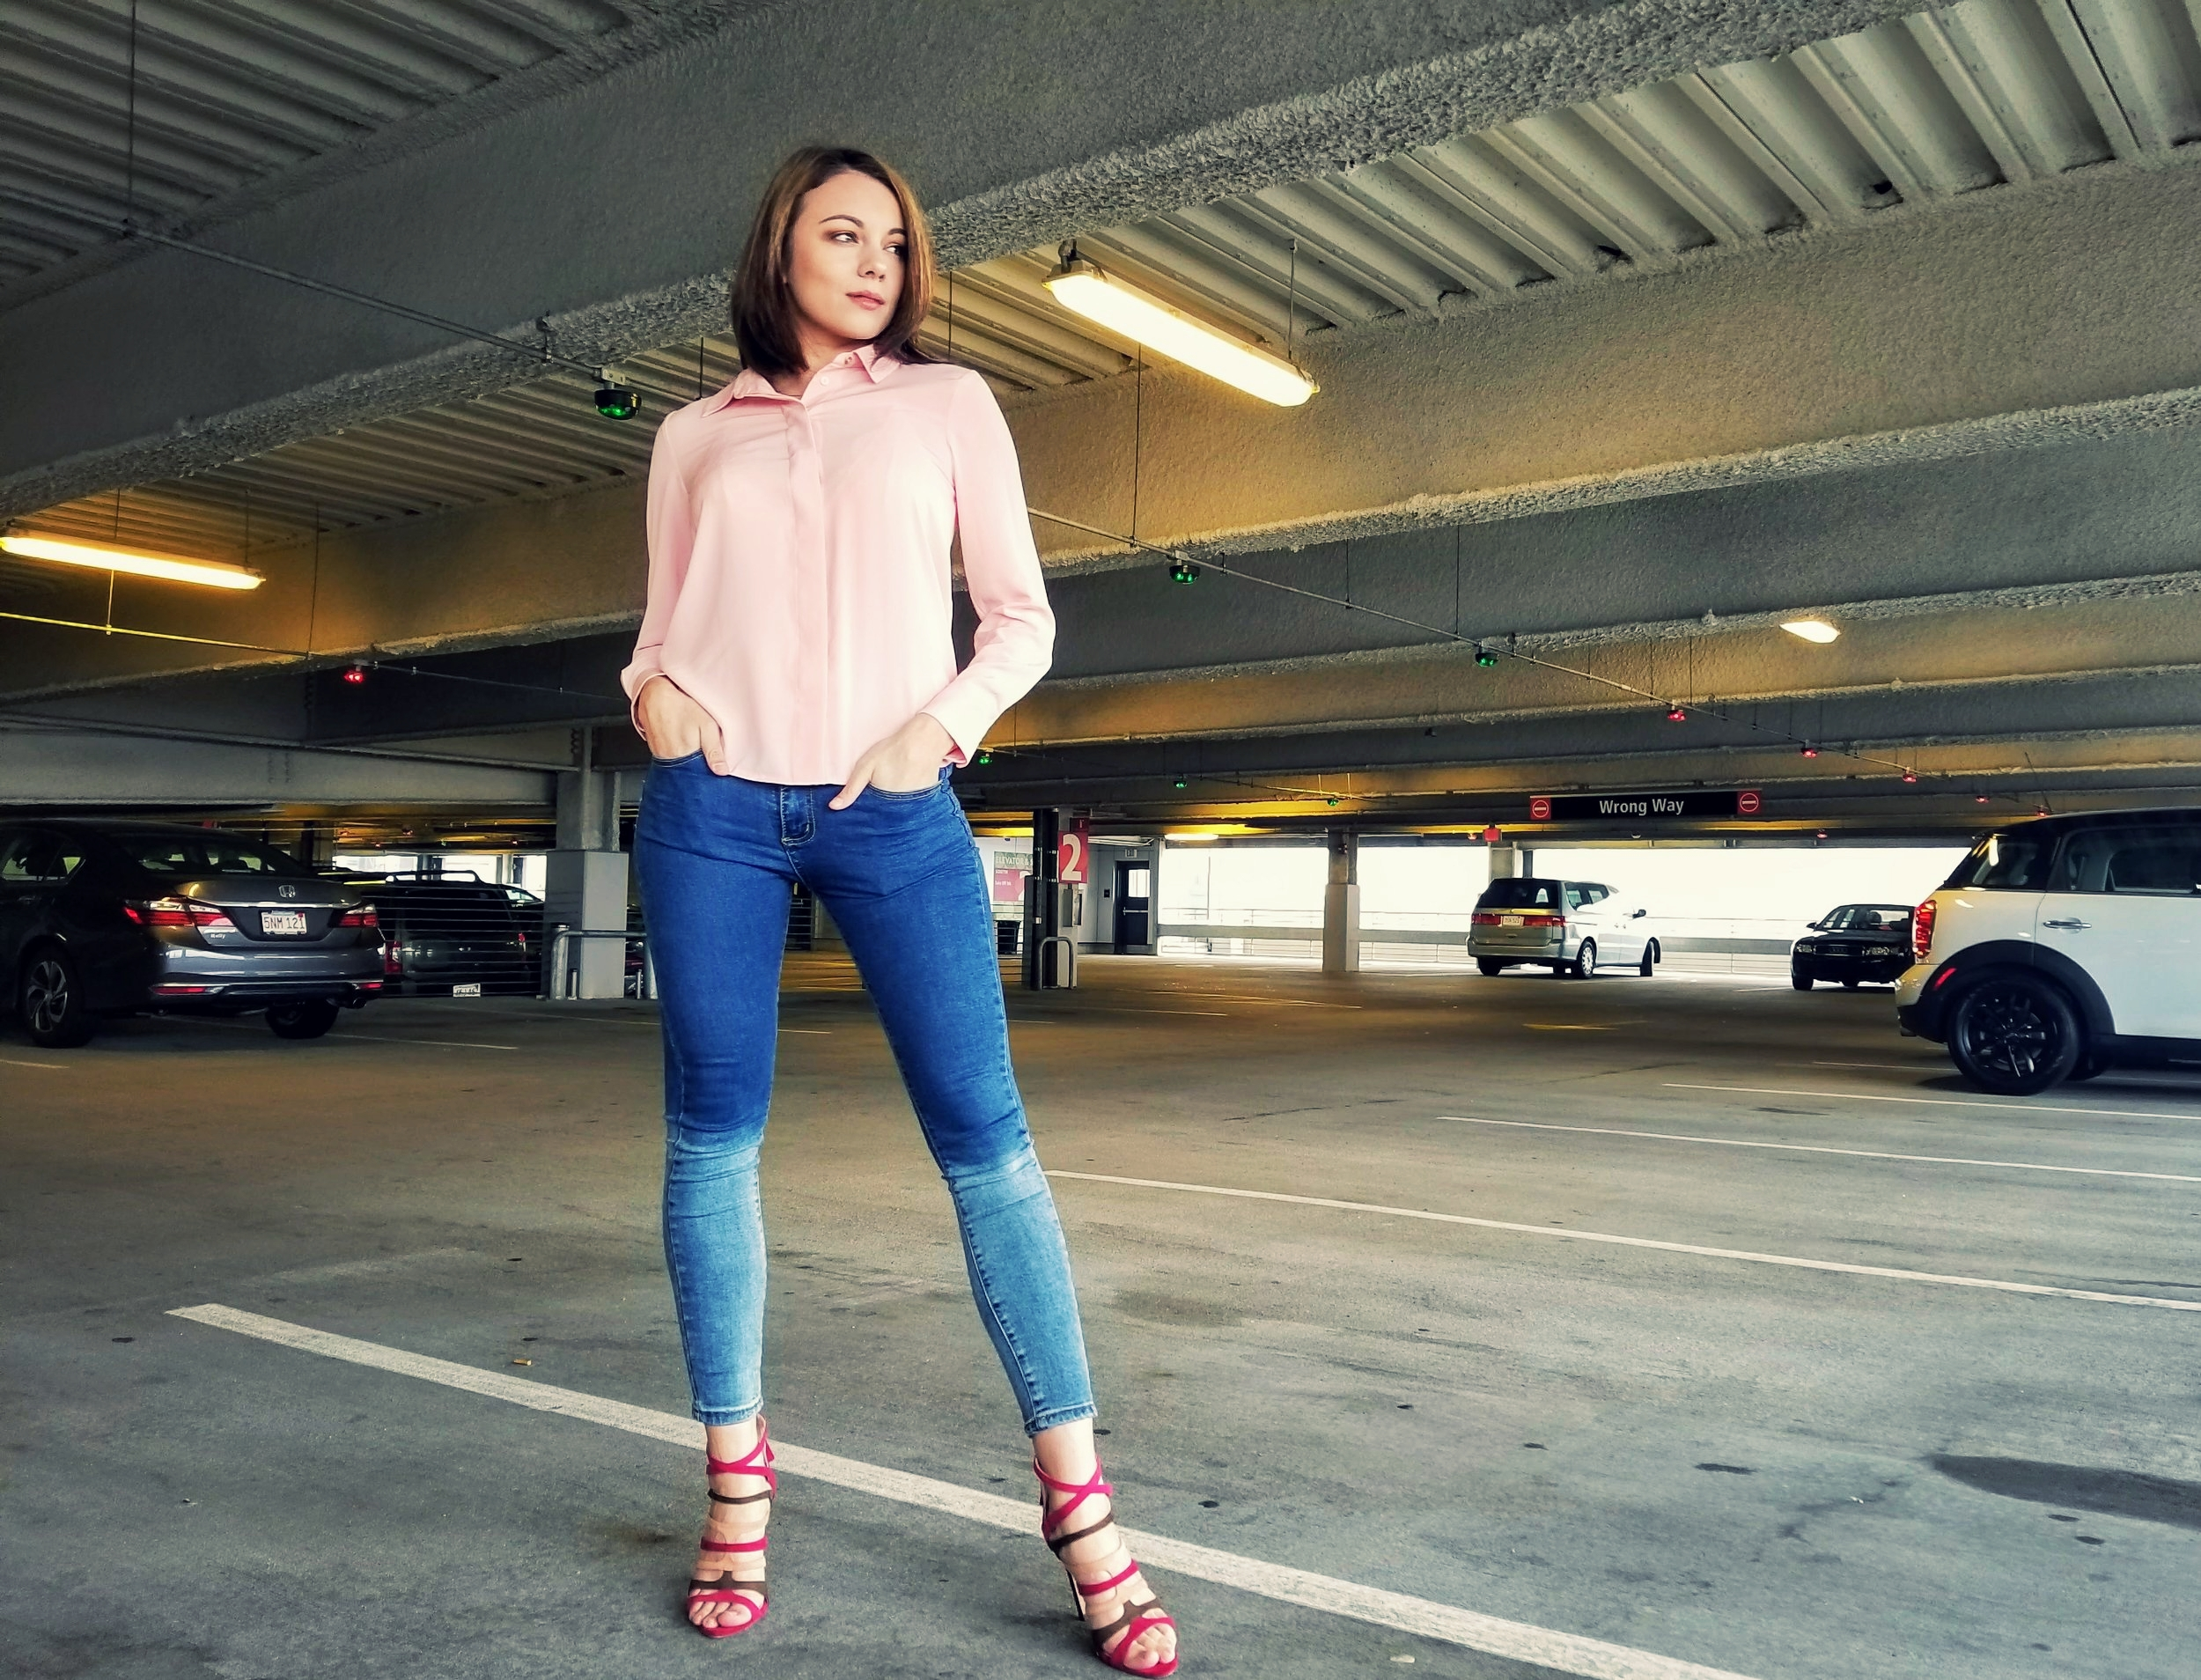 A blogger posing, looking to the side, wearing a pink long-sleeve blouse, washed out jeans, and lace up heels.